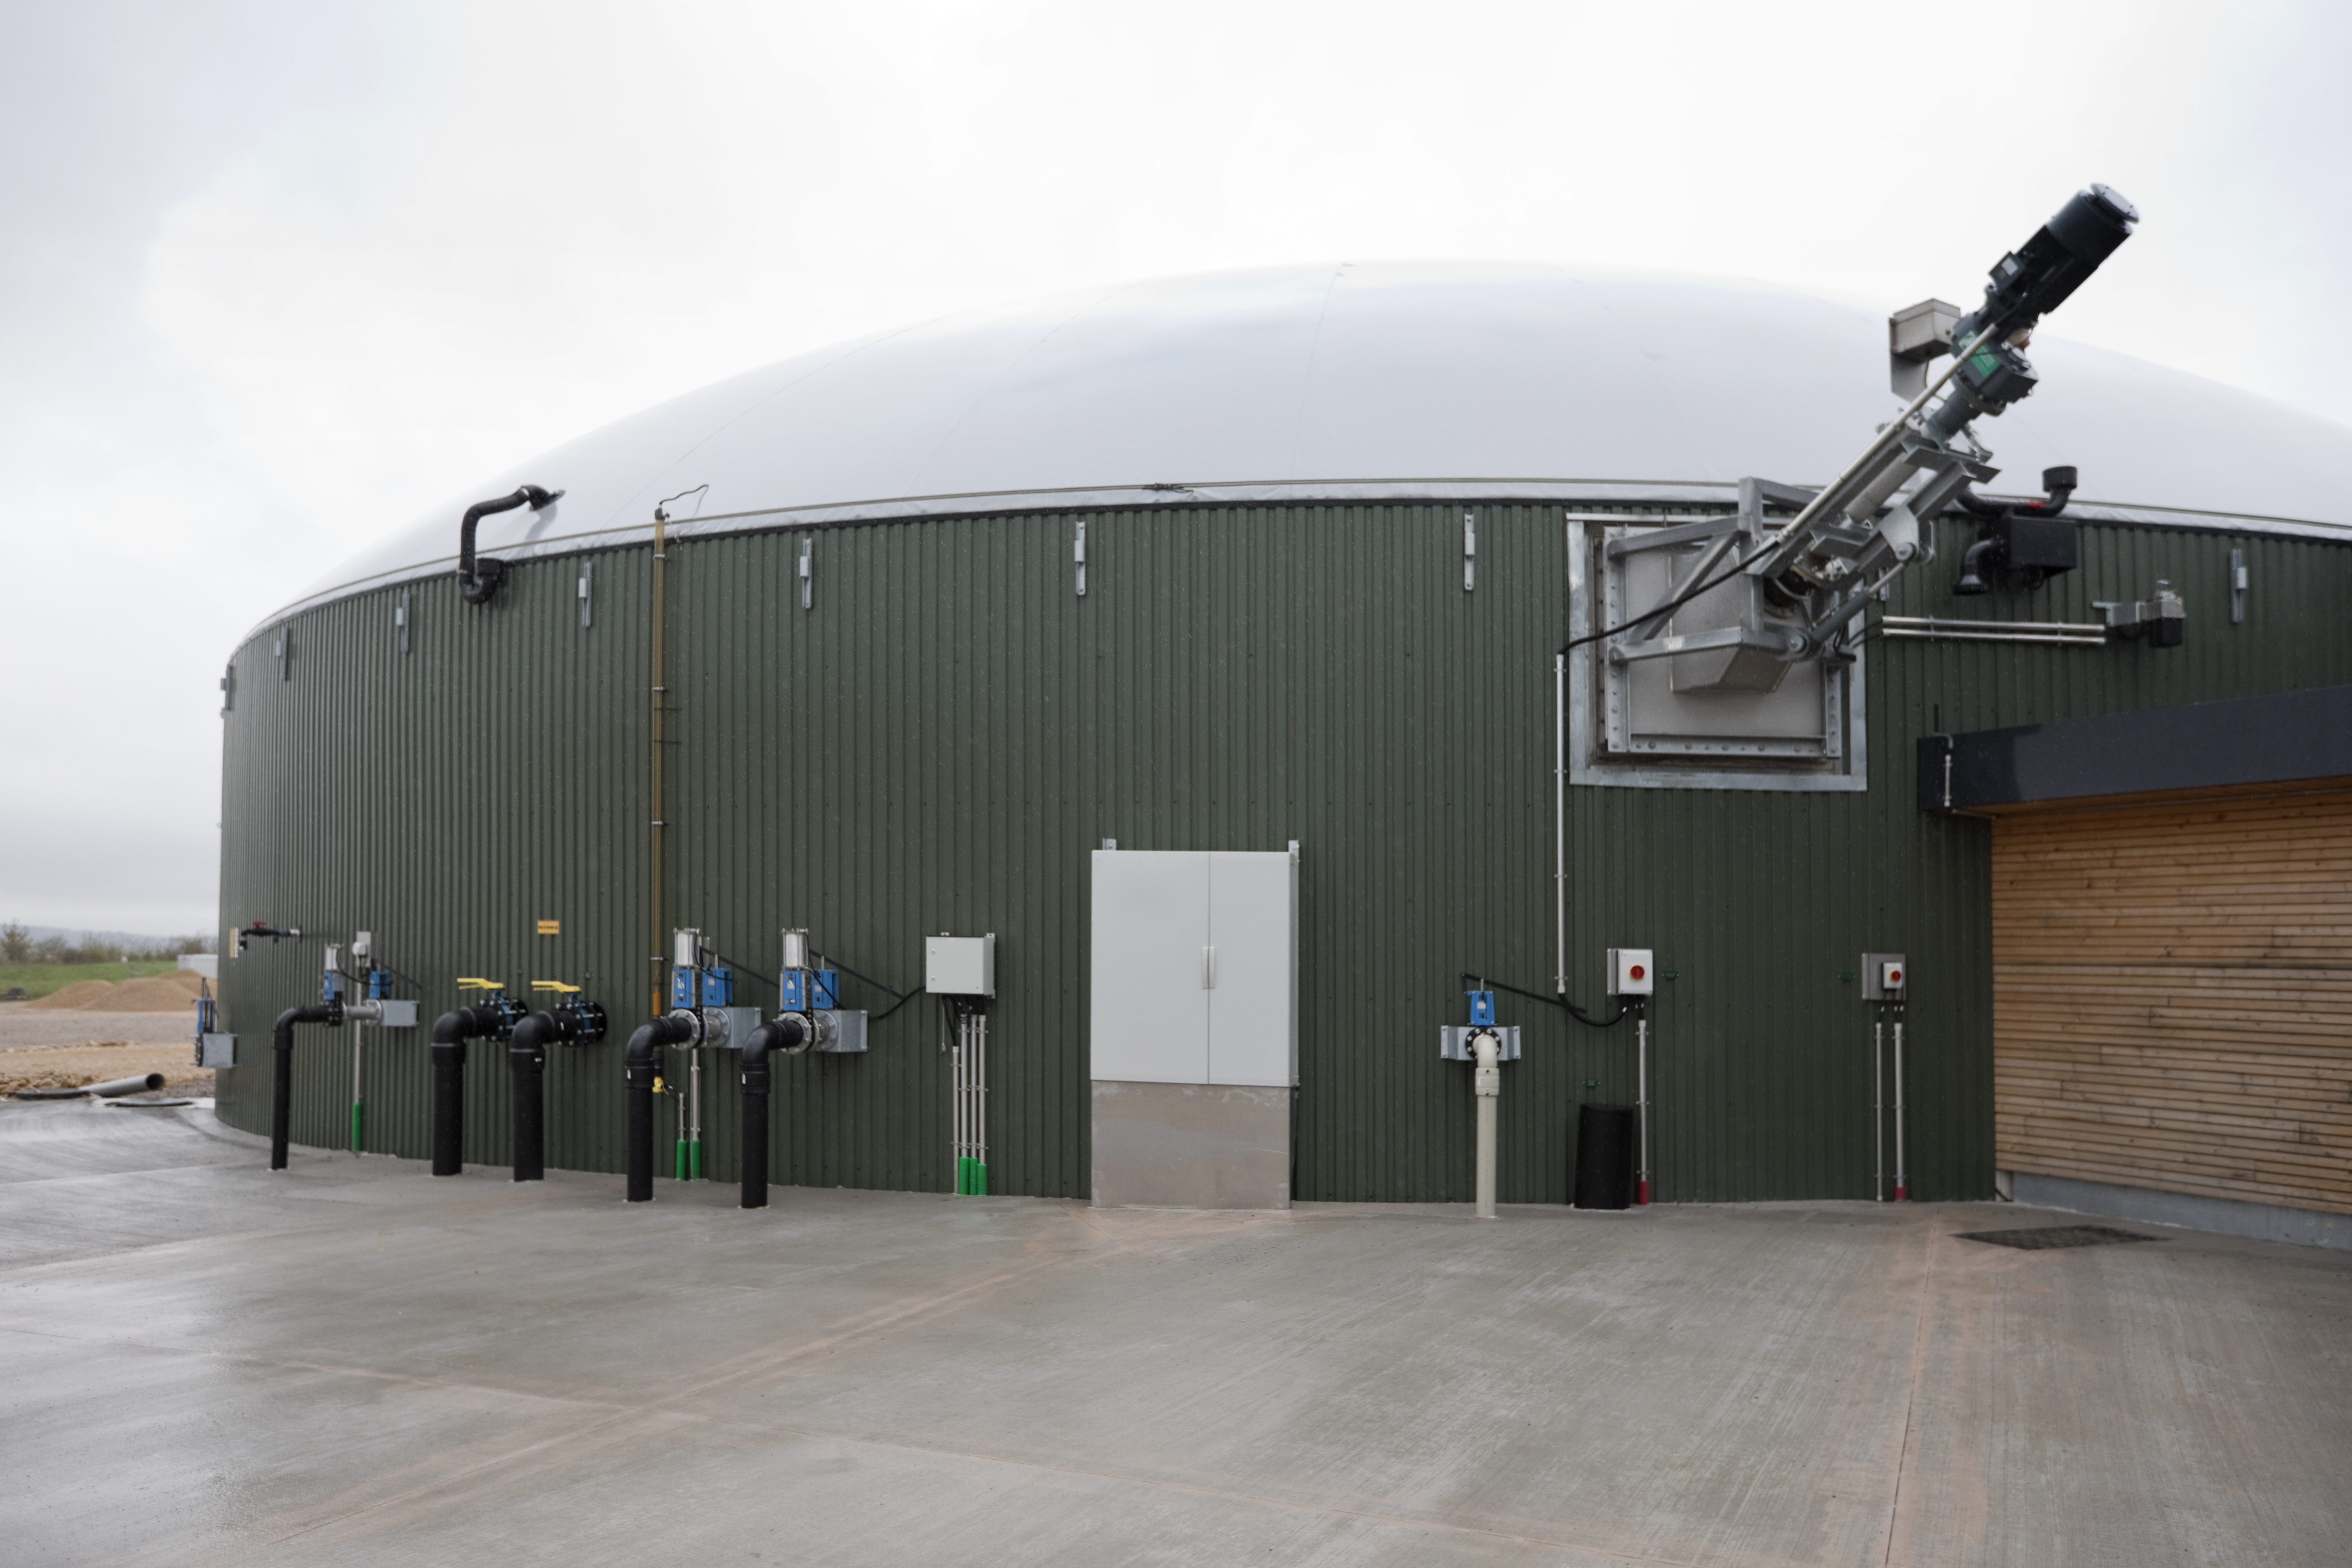 Digester boiler hire helps preserve energy output at sewage treatment plant